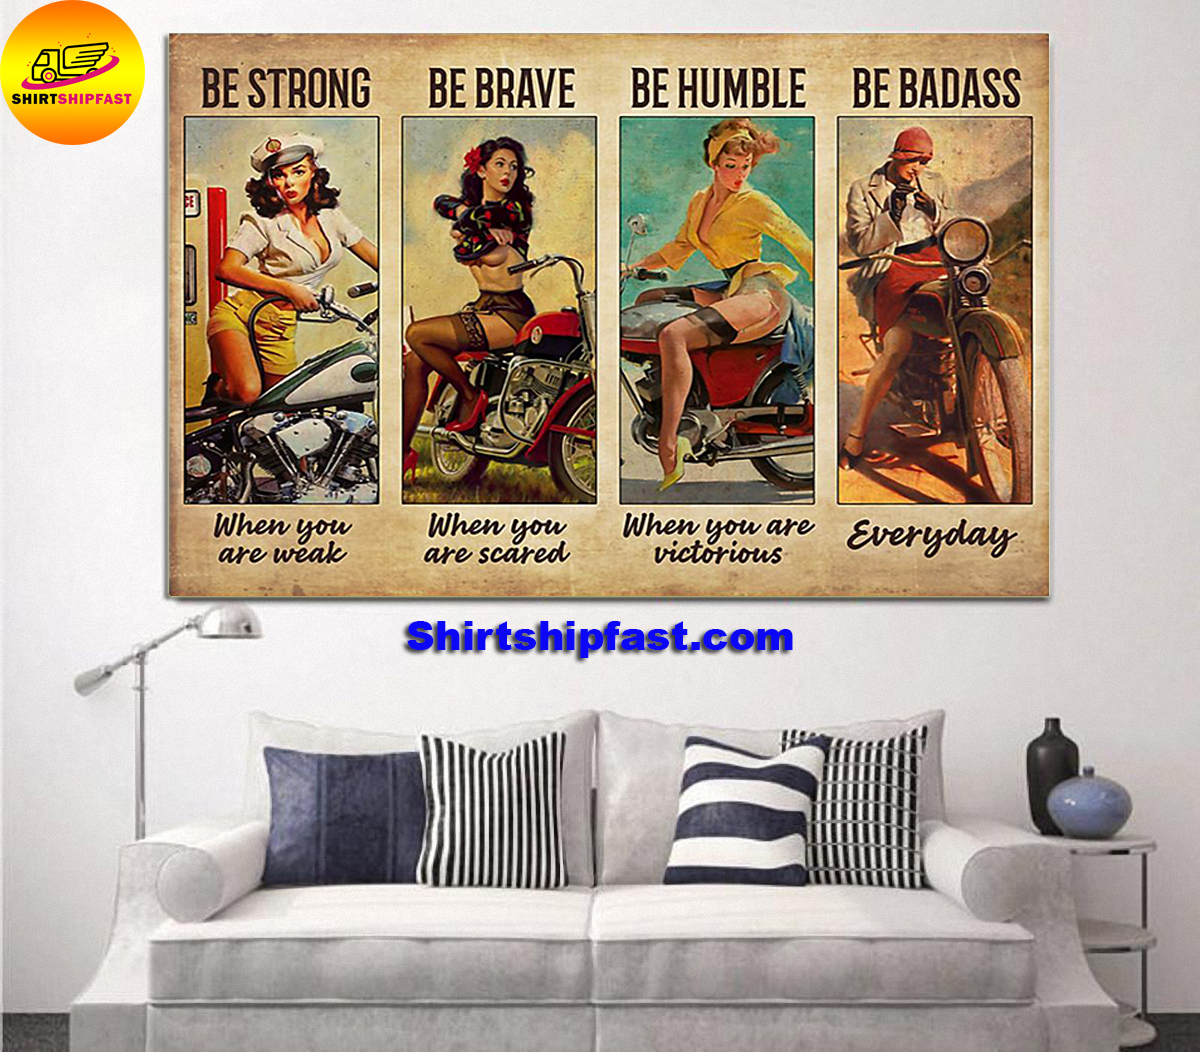 Bicycle girl be strong be brave be humble be badass poster